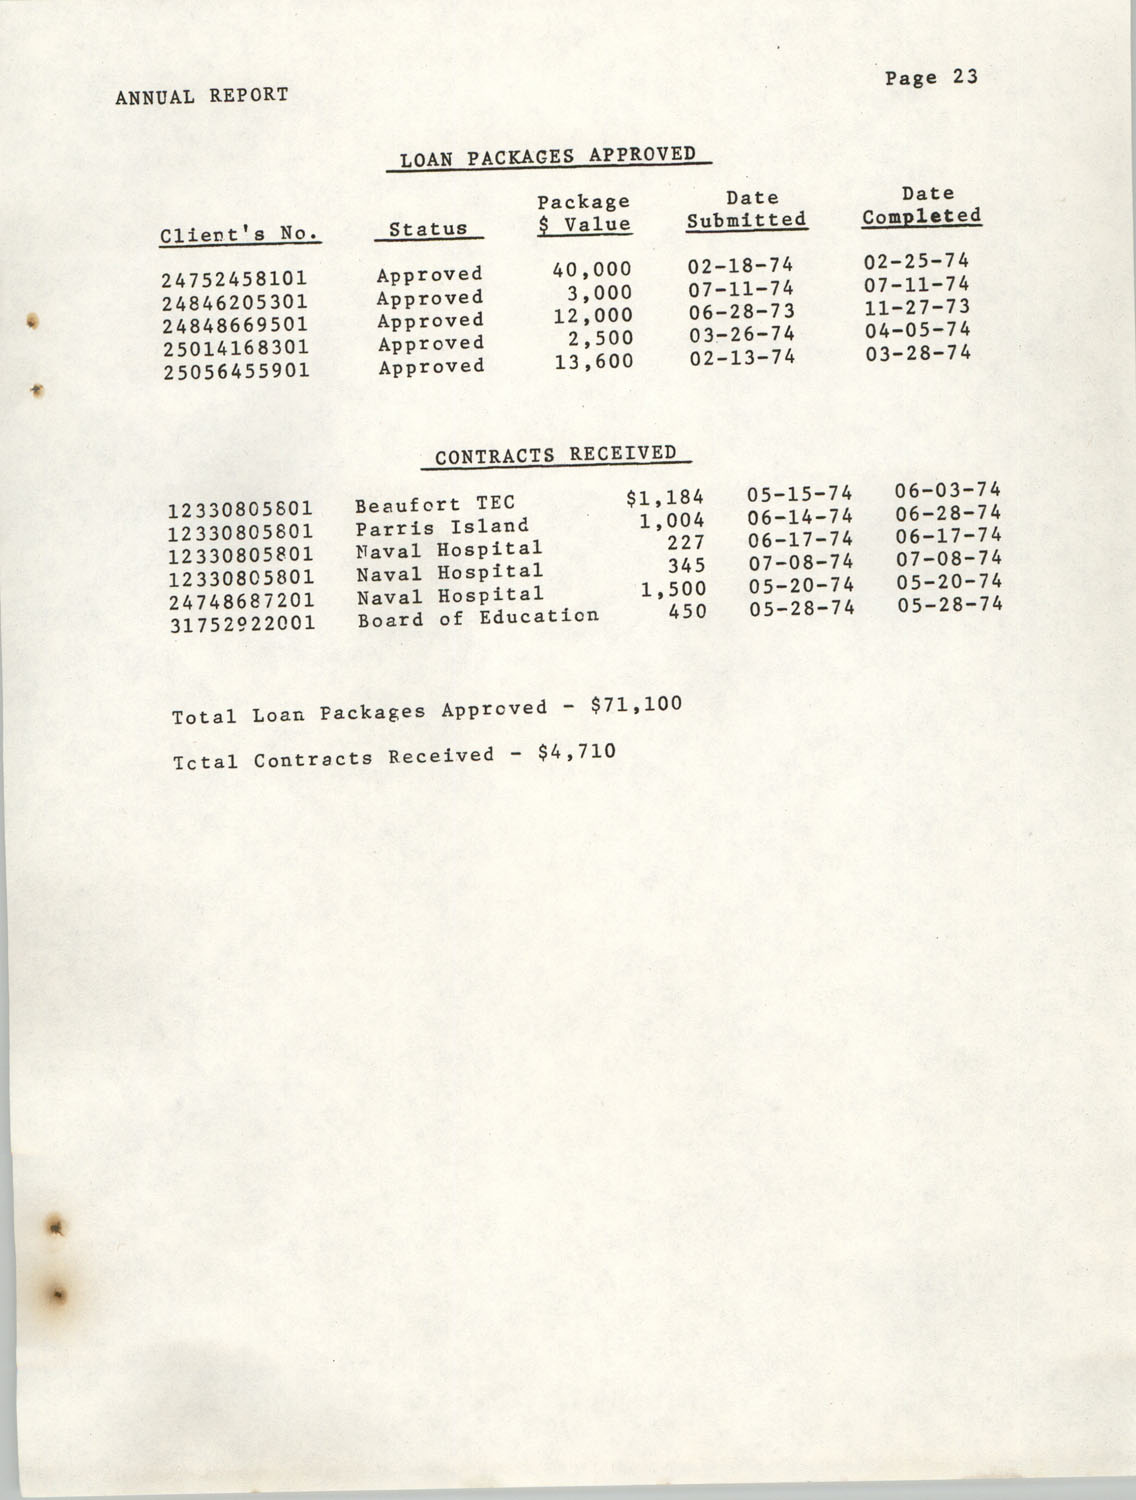 Annual Report, Penn Community Services, 1974, Page 23